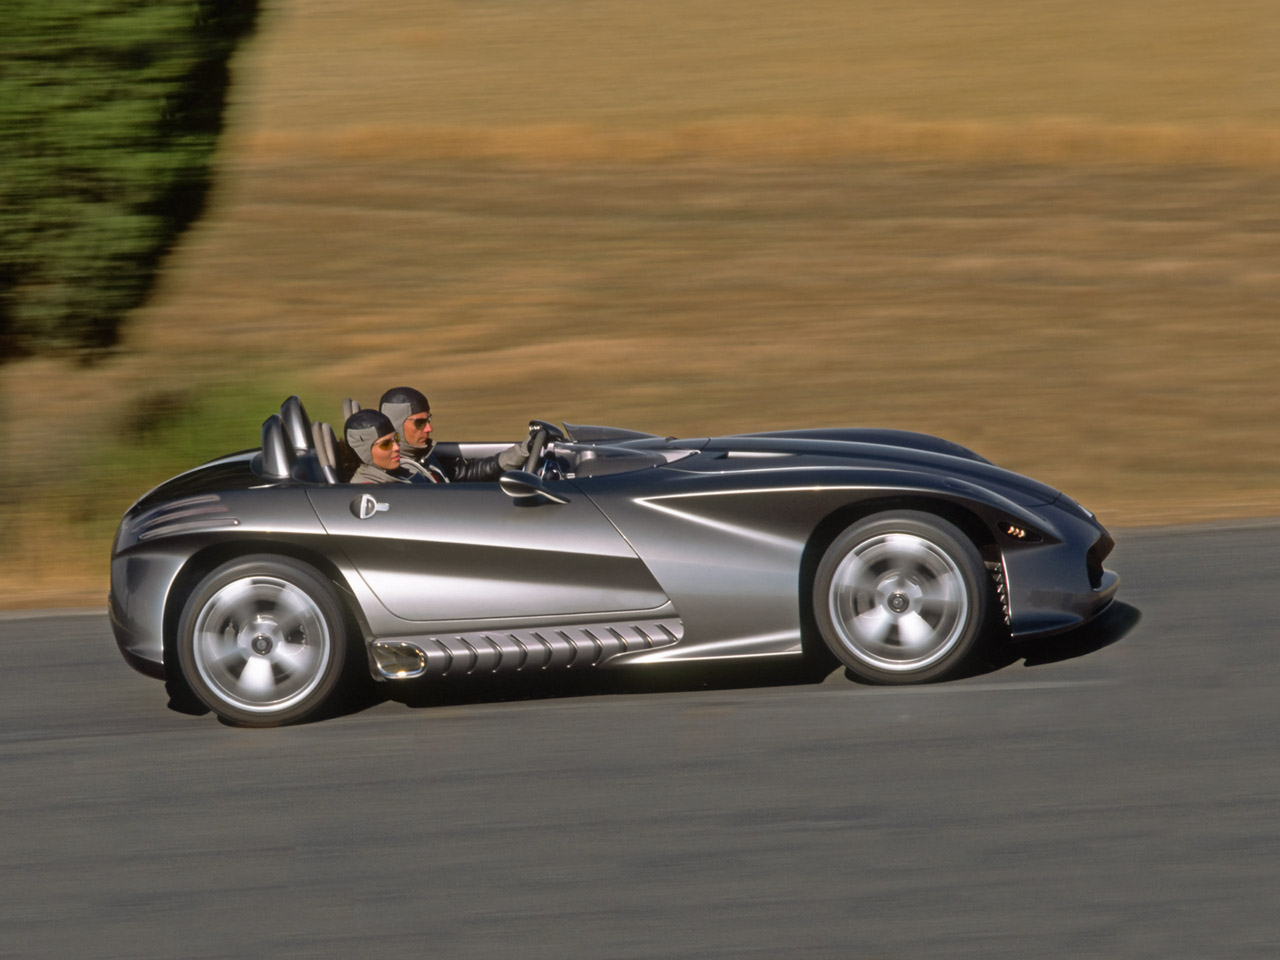 2002 mercedes benz f400 carving concept image for 2002 mercedes benz convertible